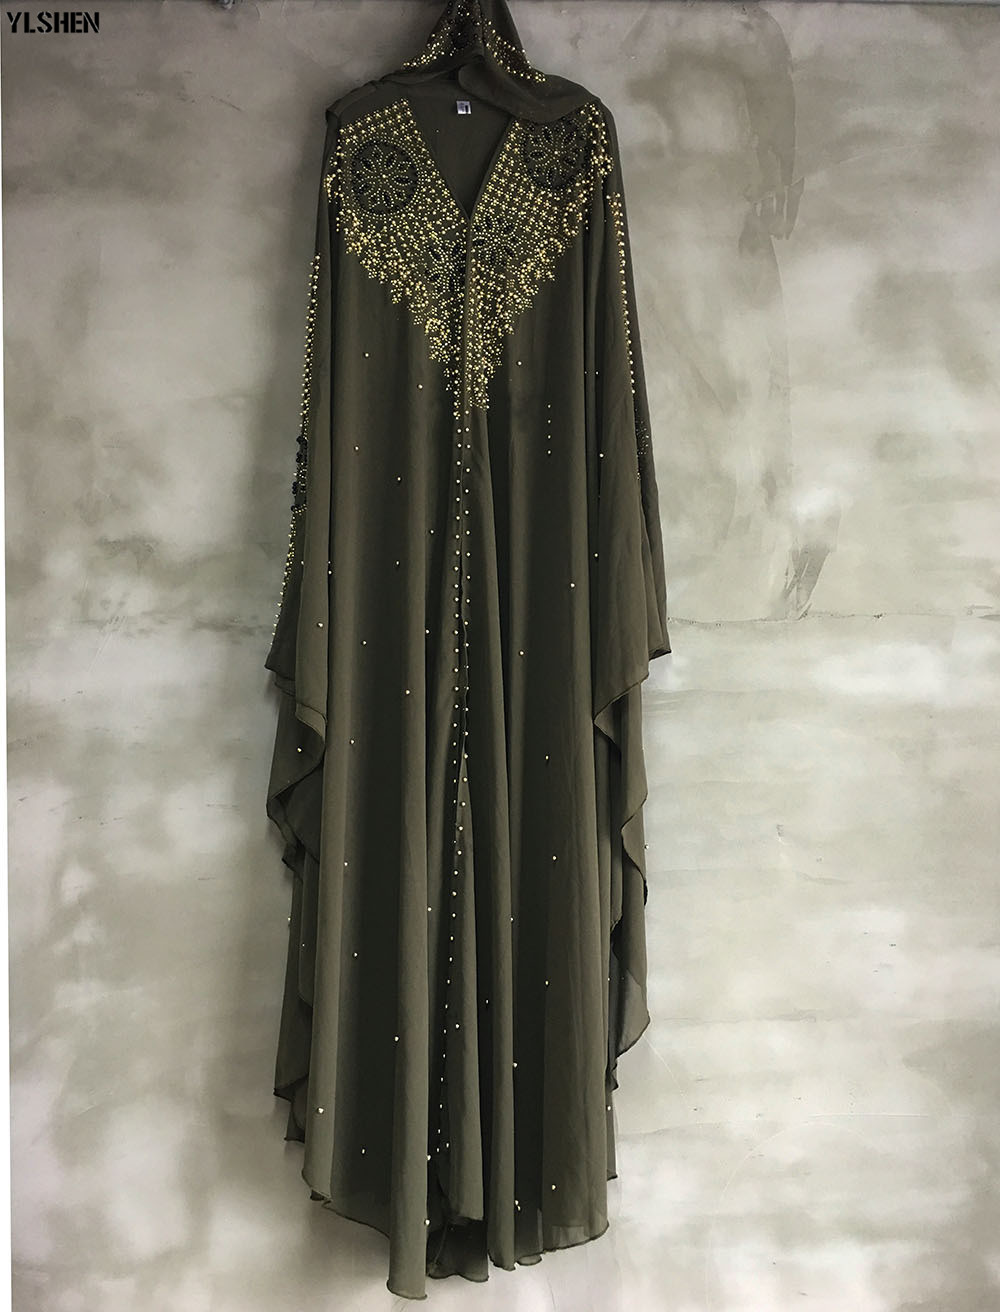 Plus Size African Dresses for Women Dashiki Diamond Beads African Clothes Abaya Dubai Robe Evening Long Muslim Dress Hooded Cape 23